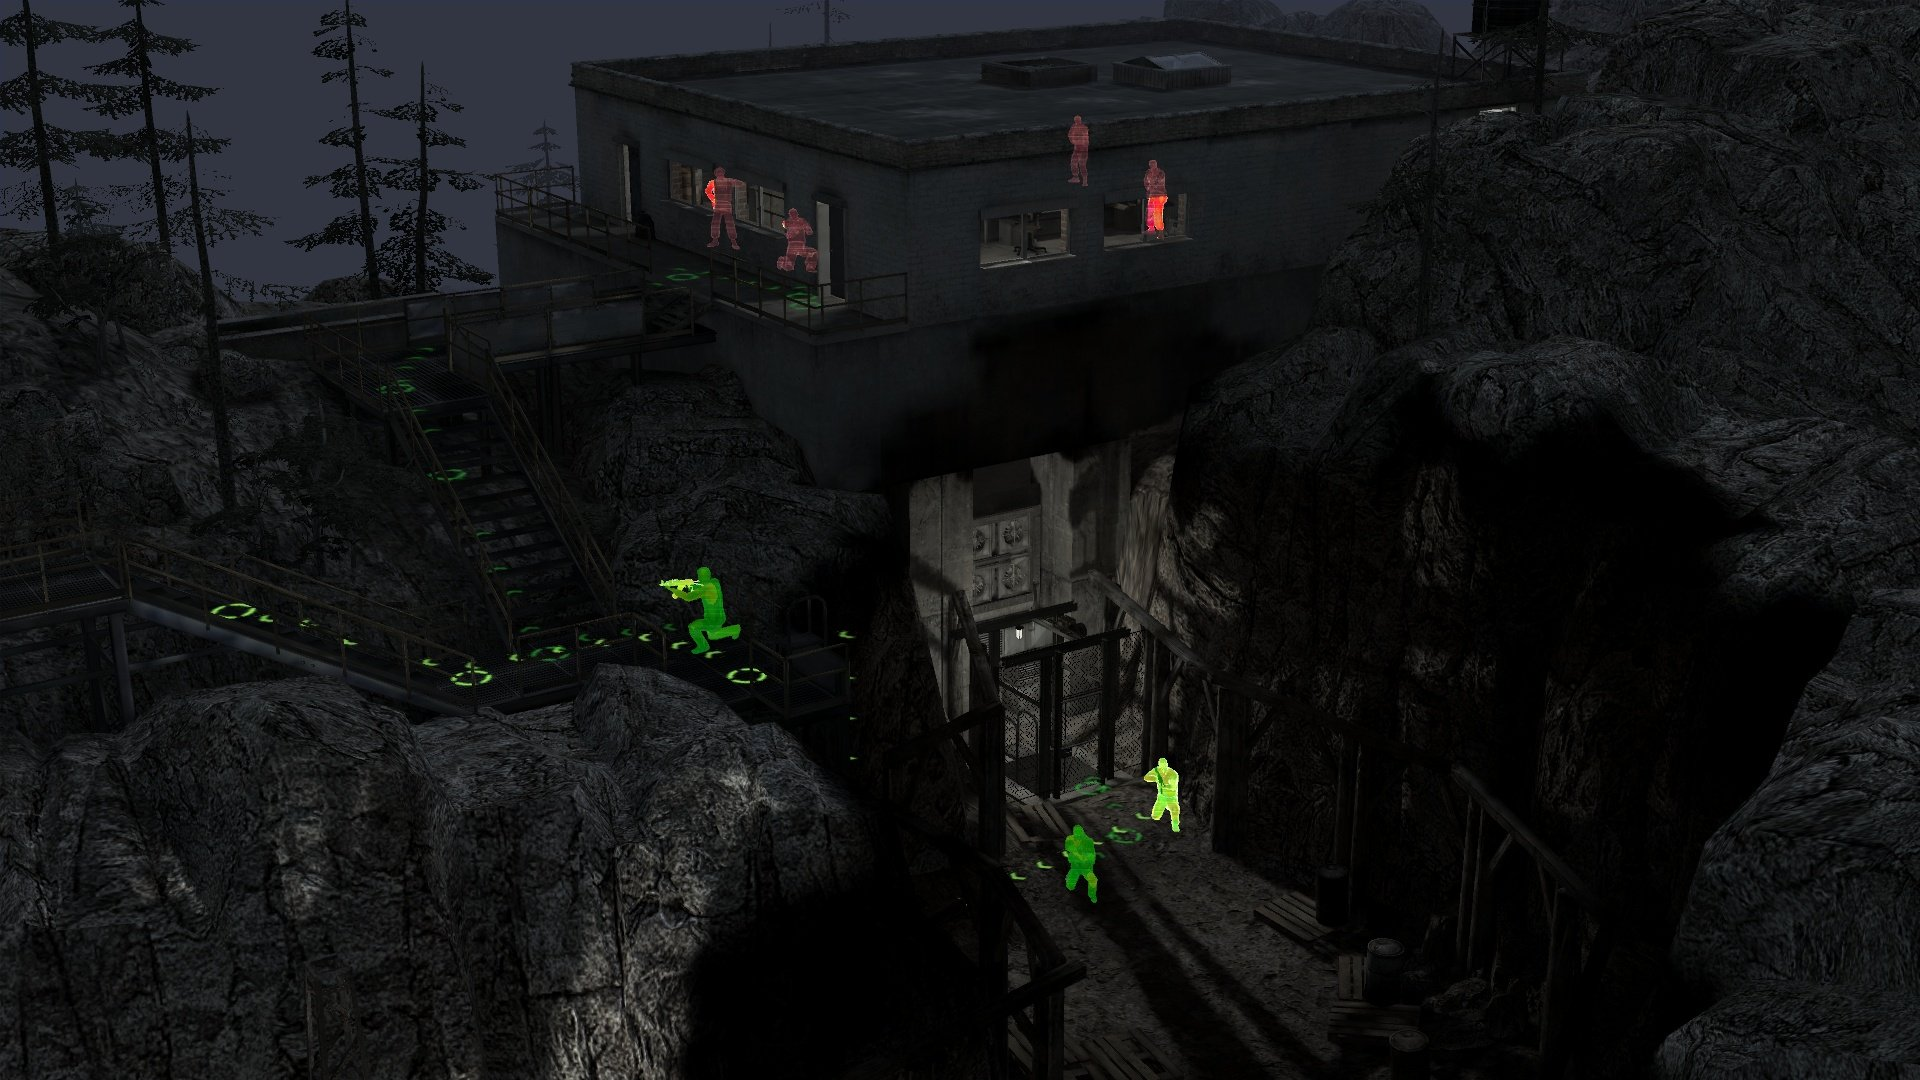 Jagged alliance: crossfire - pc game review